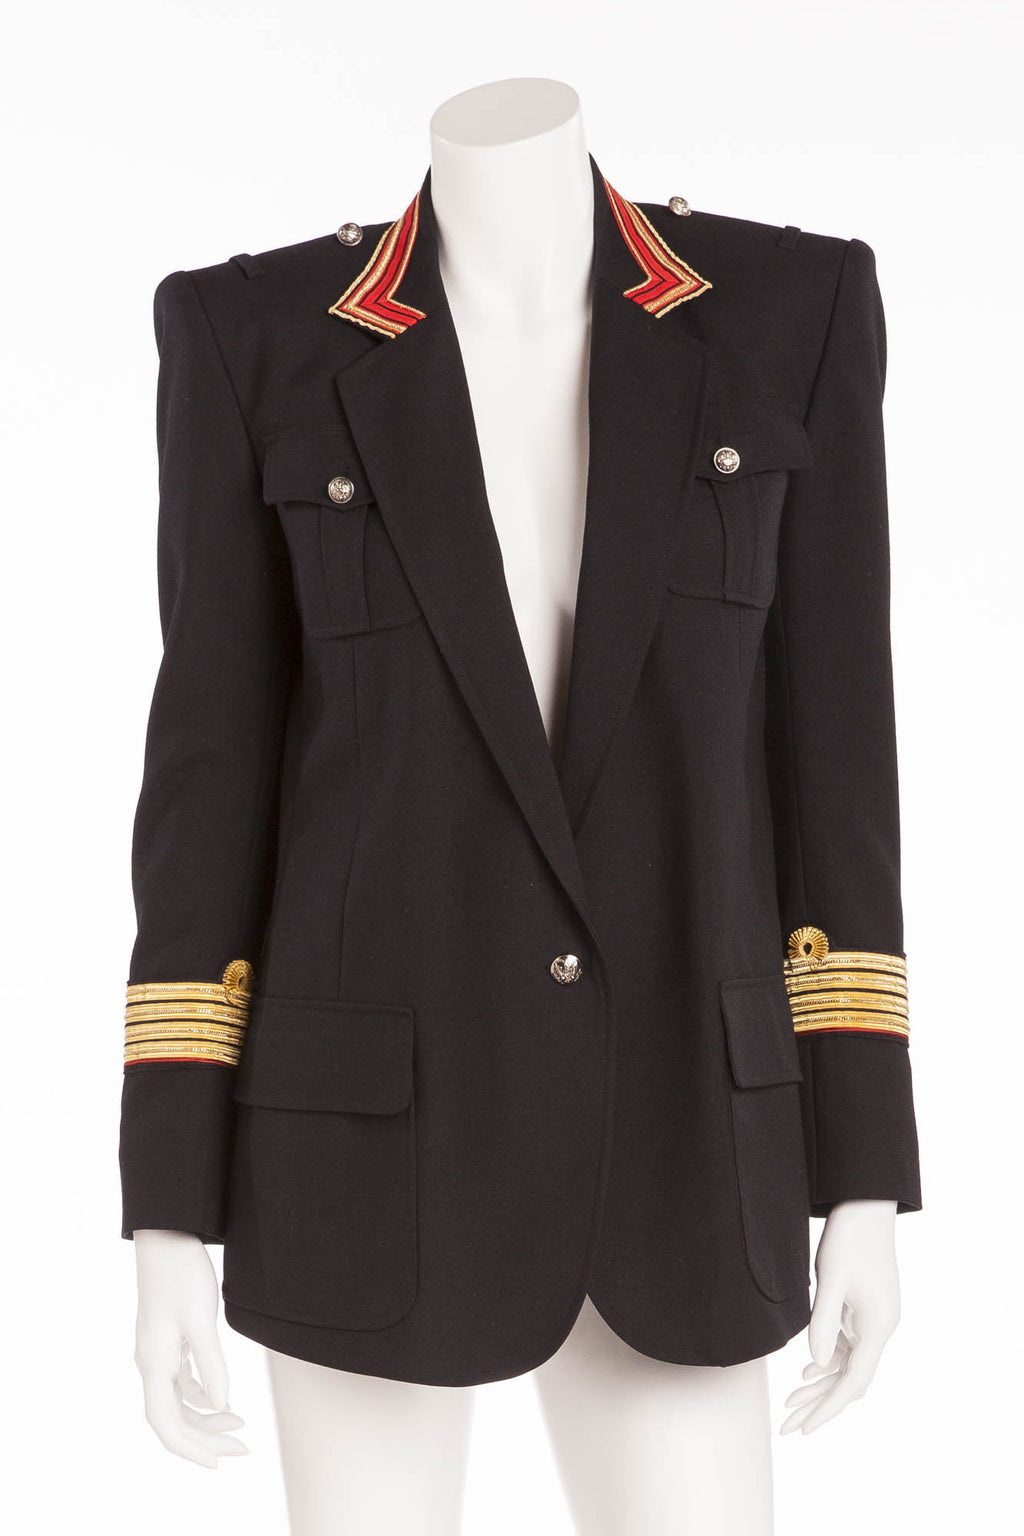 Balmain - Black Blazer Gold/Red Trim Silver Buttons - FR 40